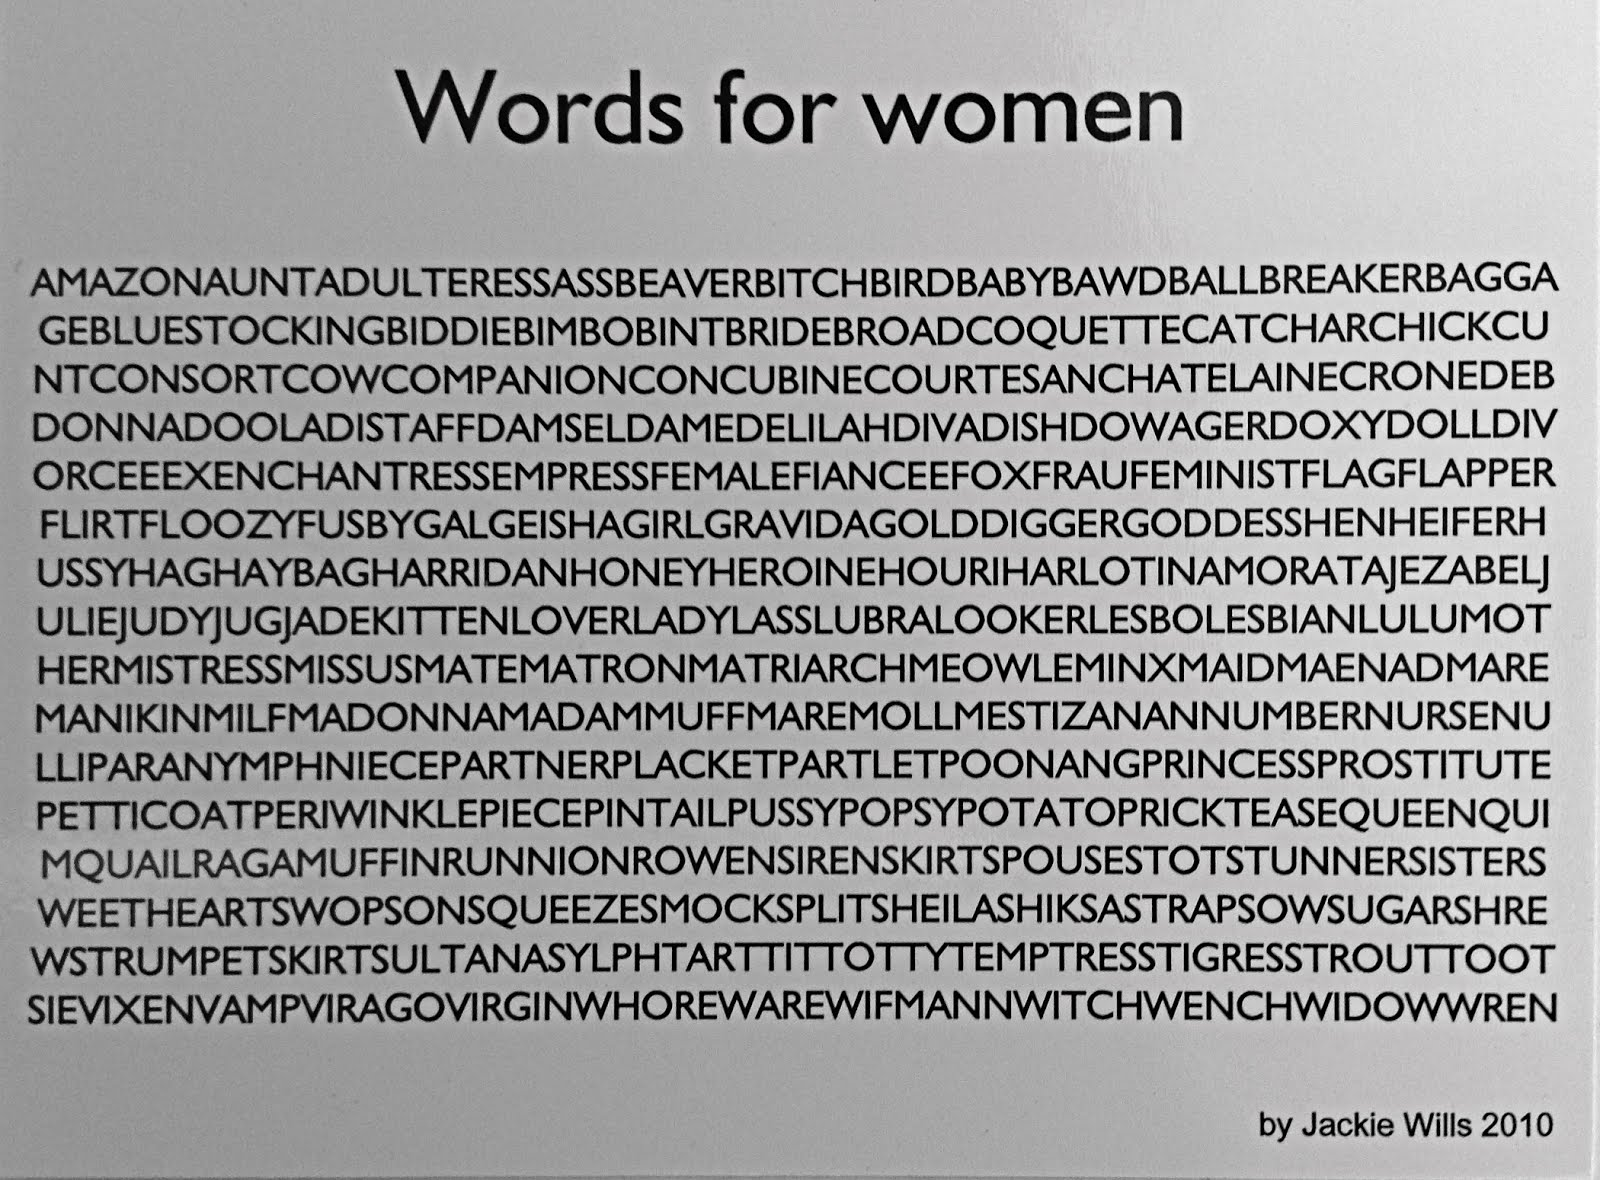 Words for women